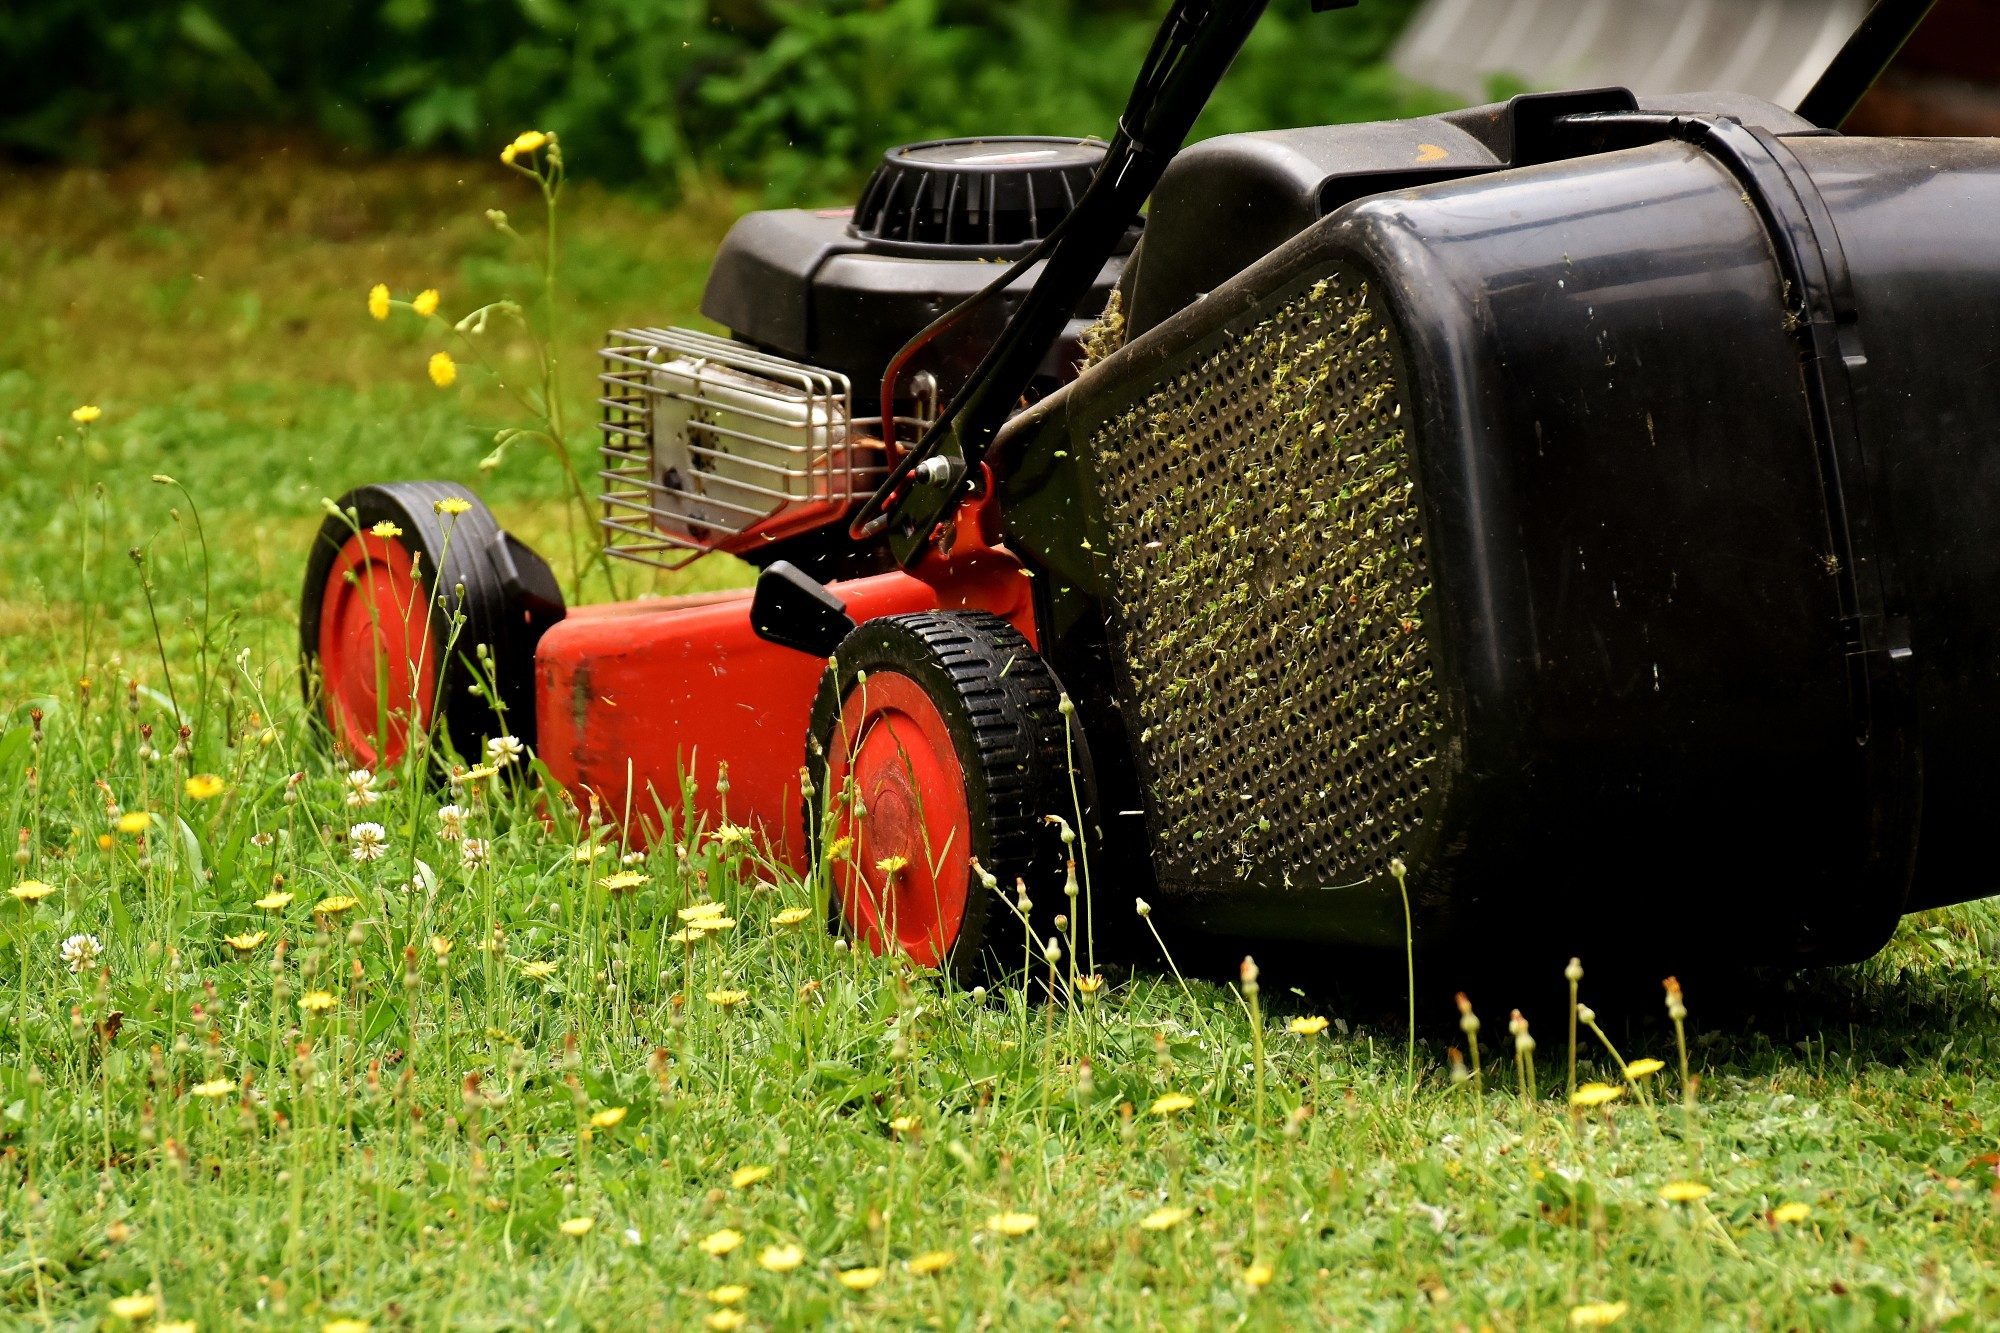 5 Common Lawn Mowing Mistakes and How to Avoid Them